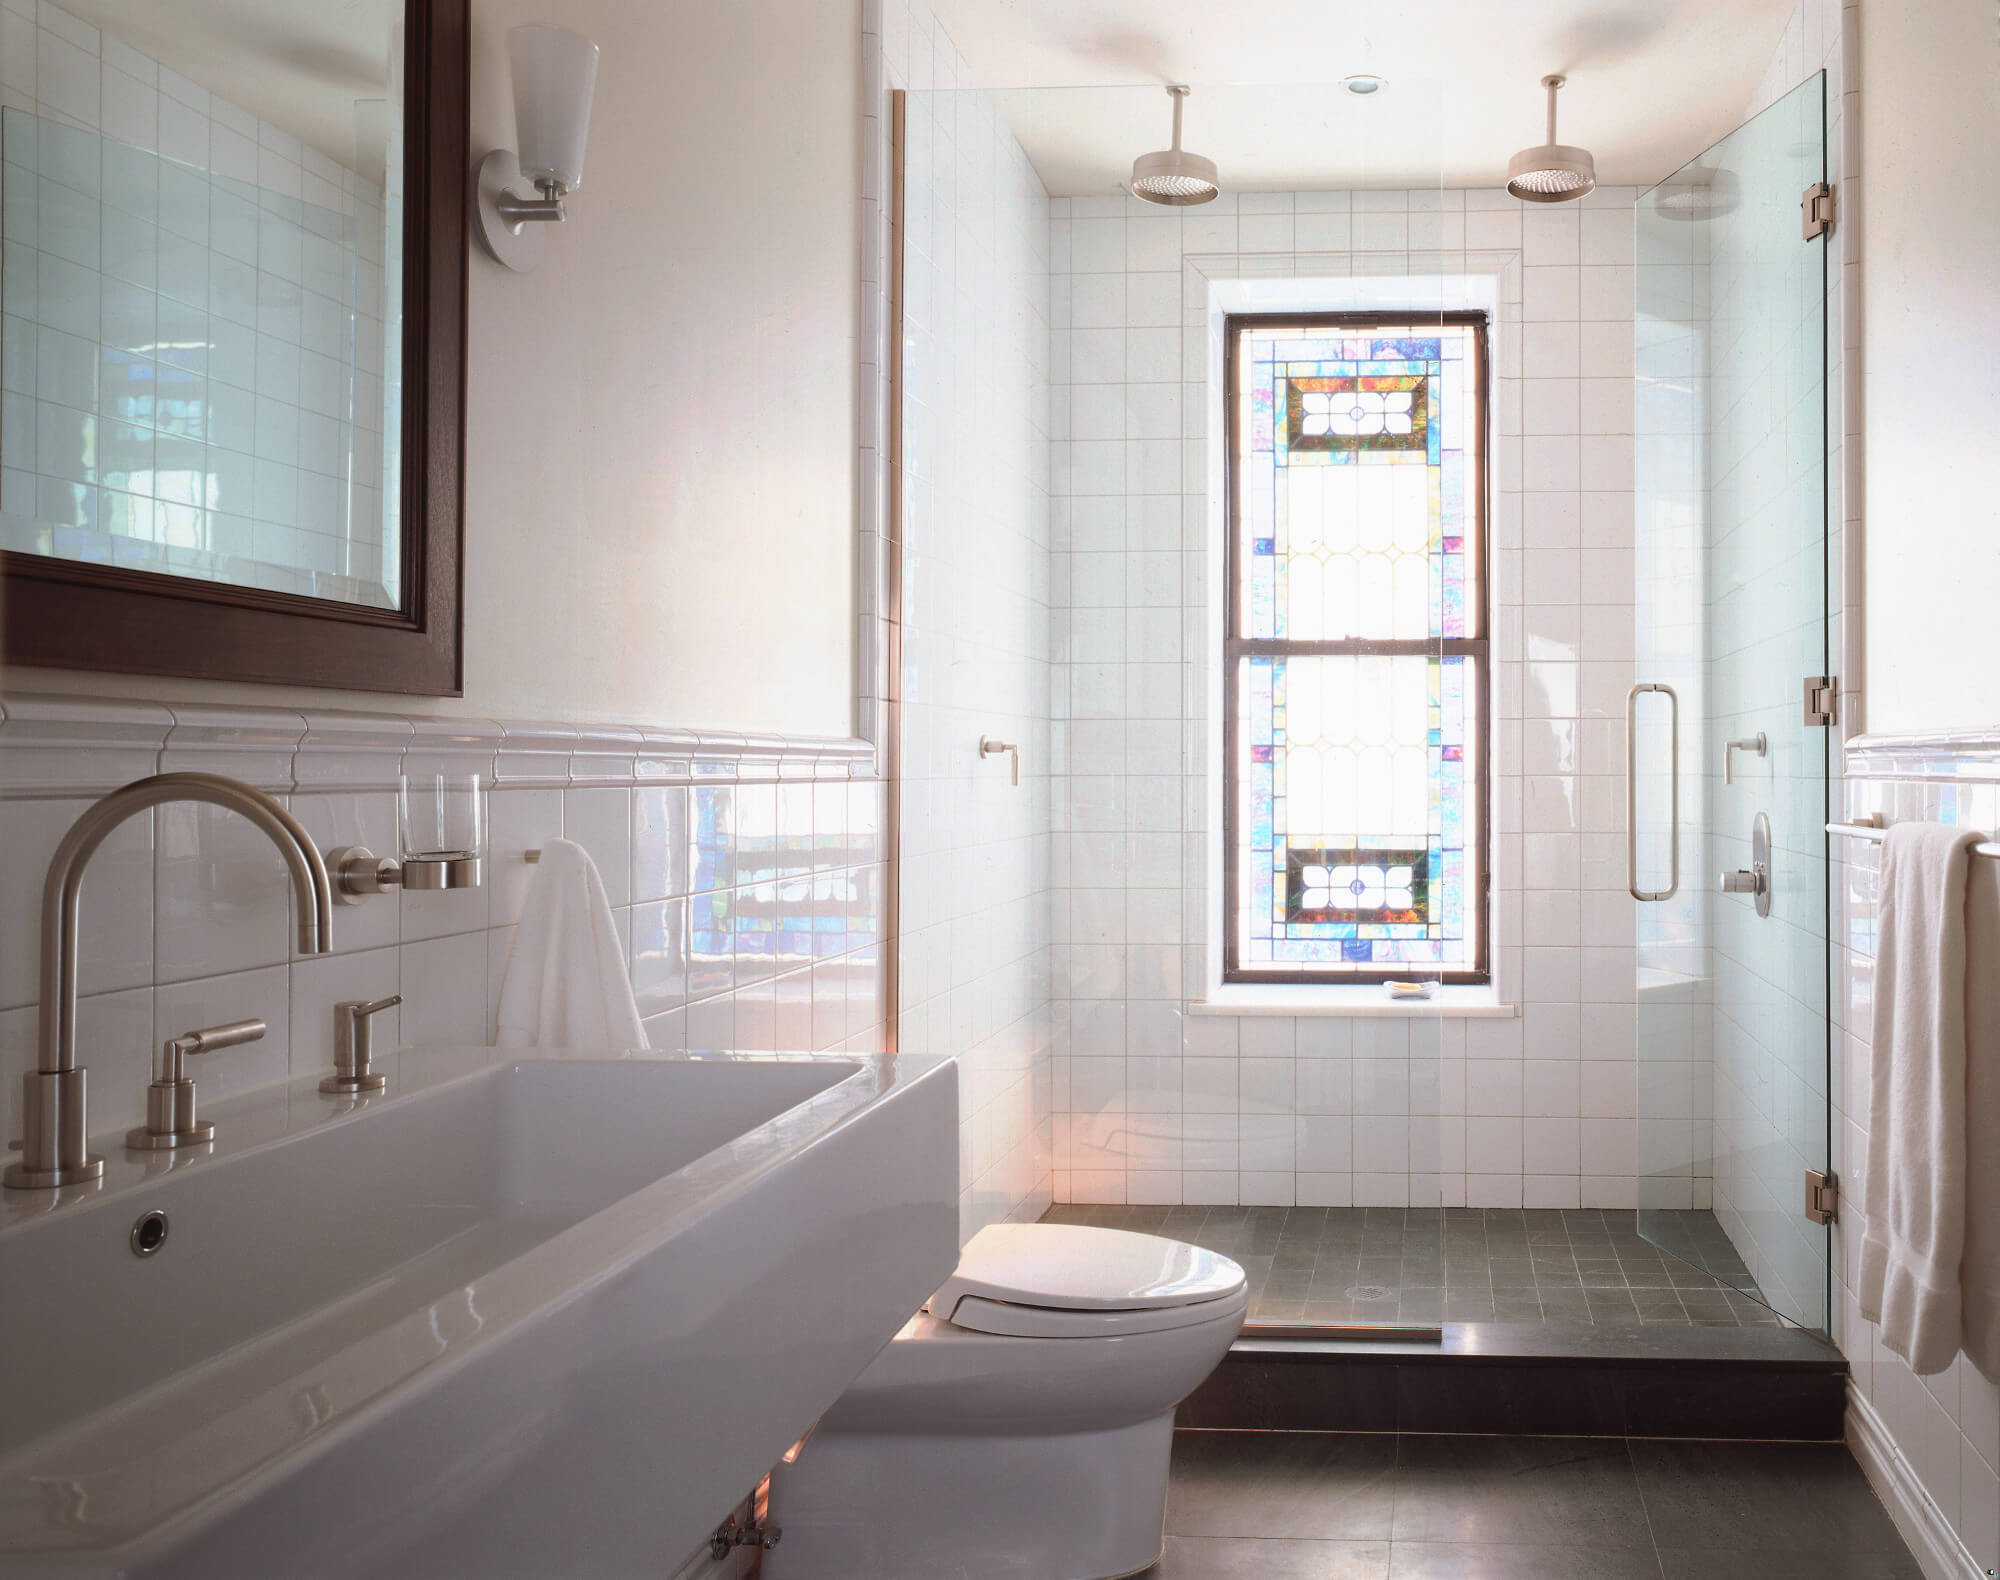 Refurbished stained-glass window in a minimalist bathroom.